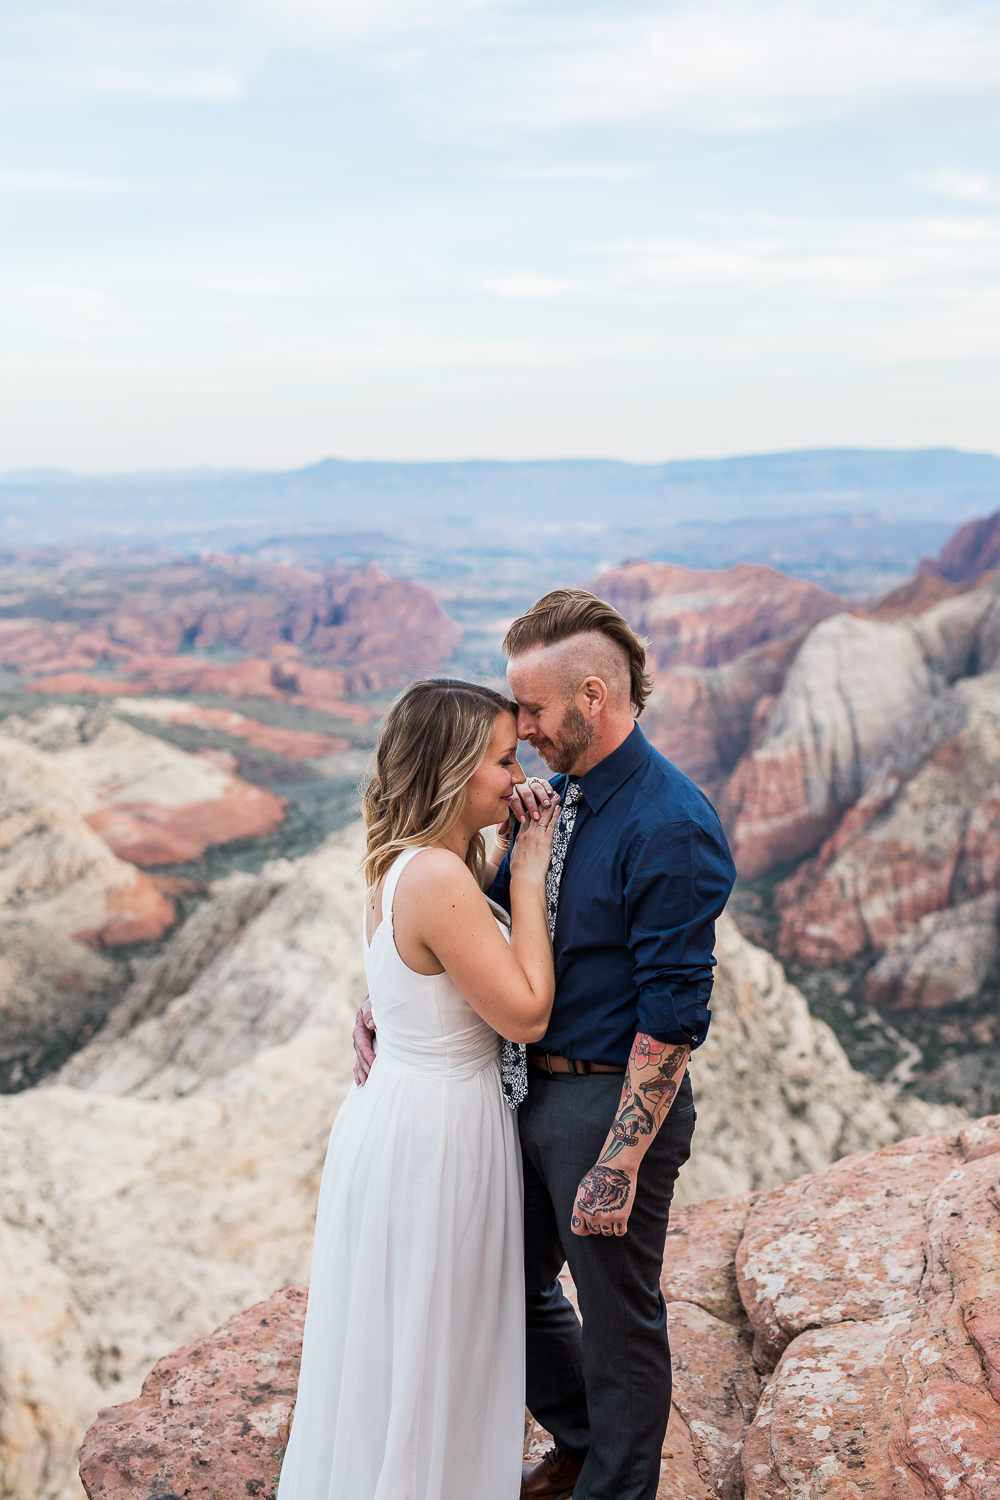 Epic vow renewal near Zion National Park Kyle Loves Tori Photography